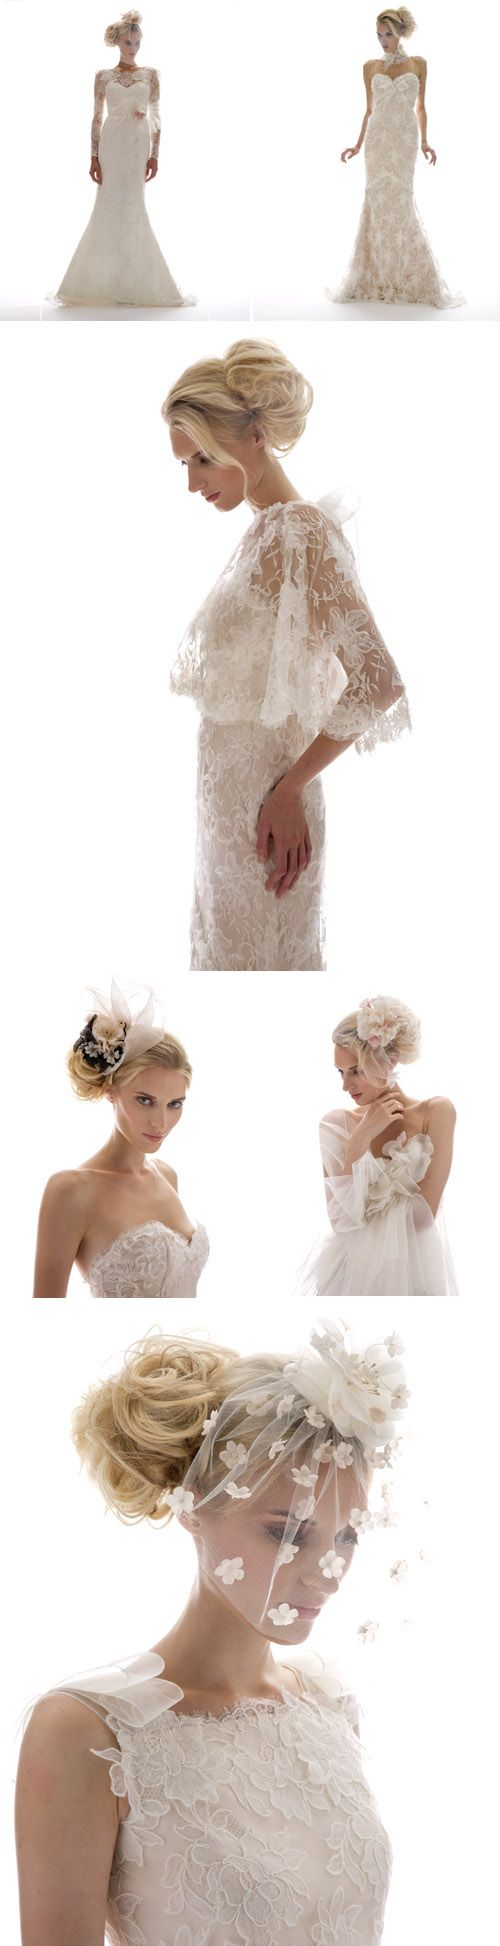 Not your average wedding veils designed by Elizabeth Fillmore are chic interpretations of the traditional accessory